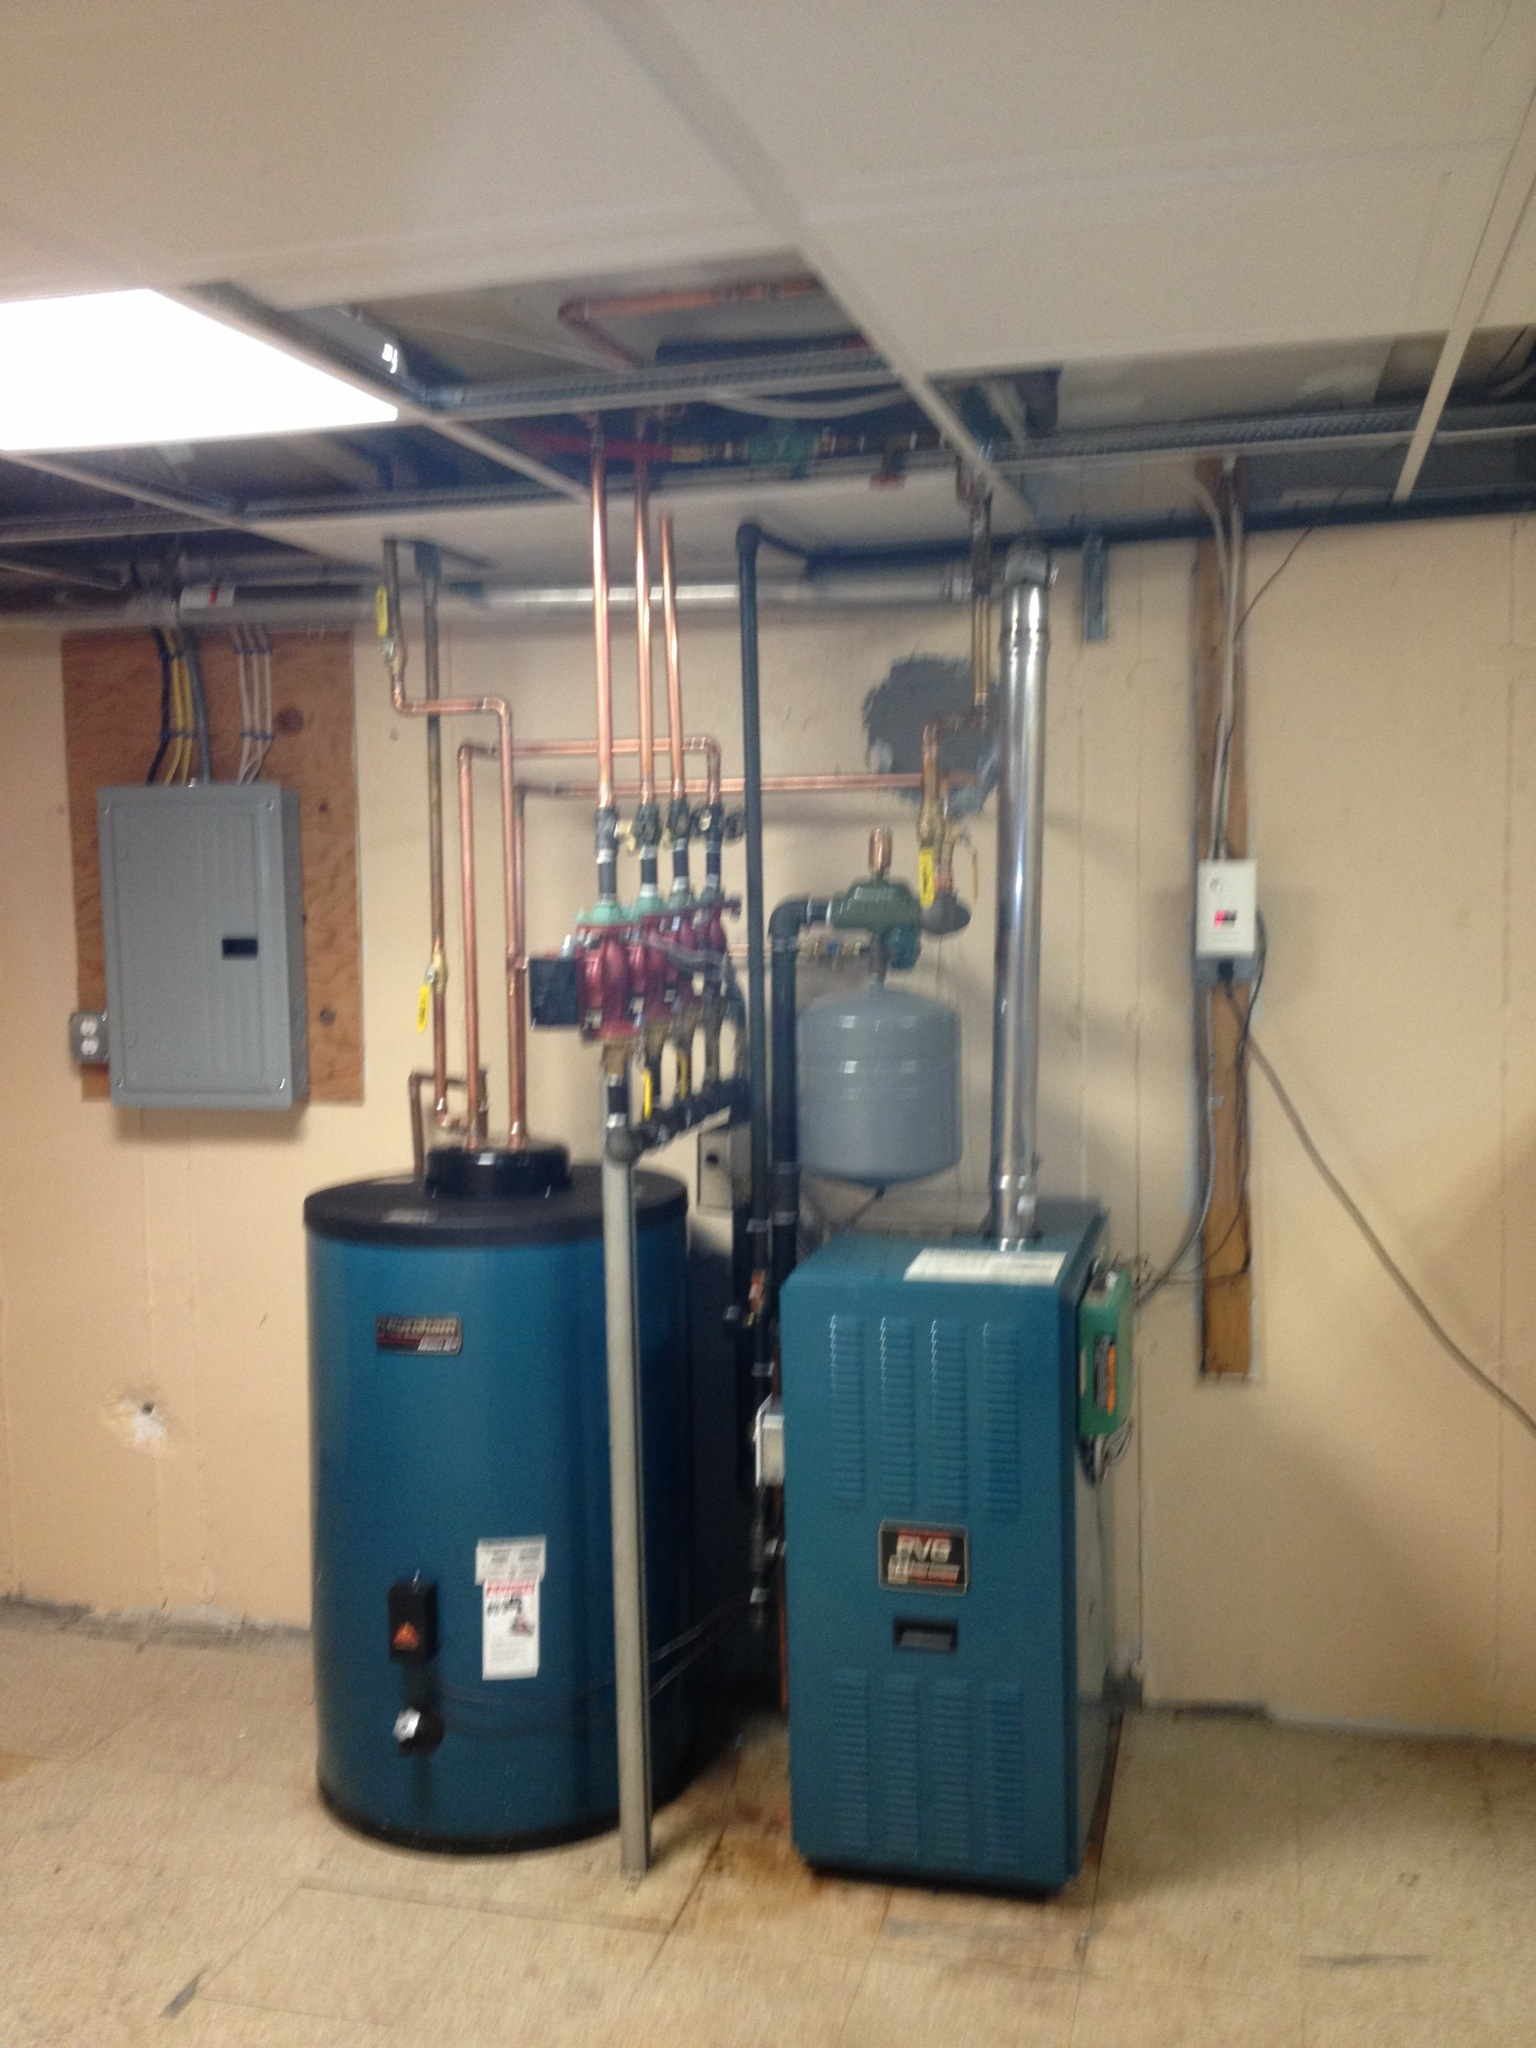 New Burnham PVG with Alliance indirect hot water heater